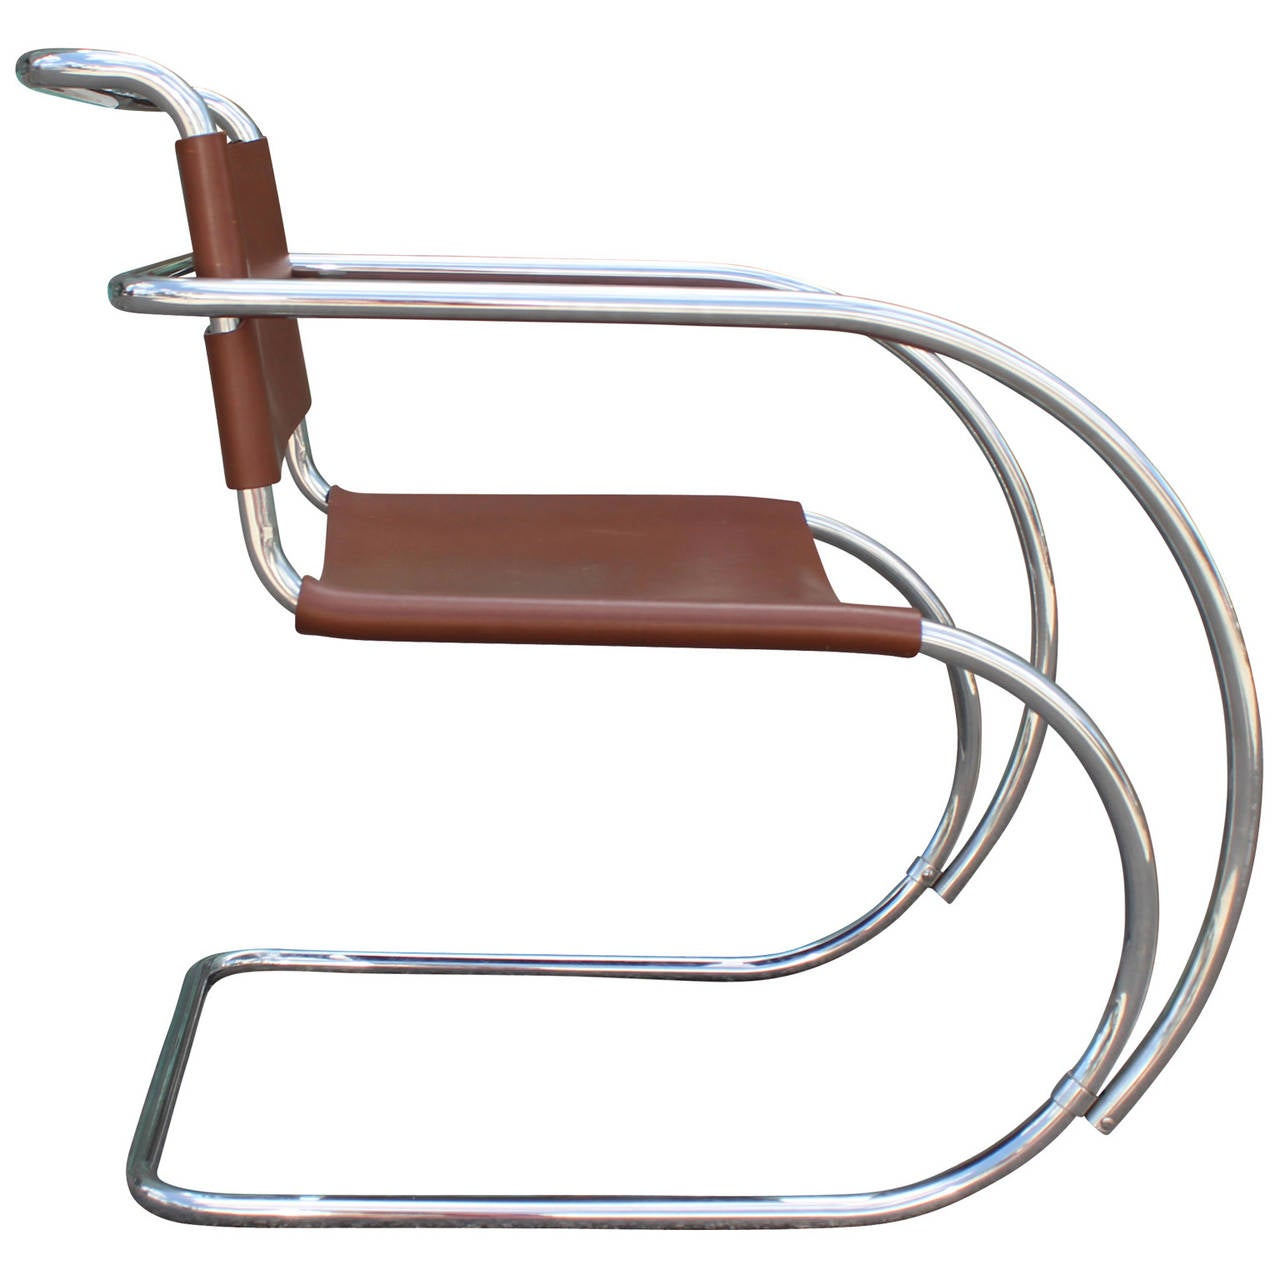 Mr 20 bauhaus chair by ludwig mies van der rohe at 1stdibs